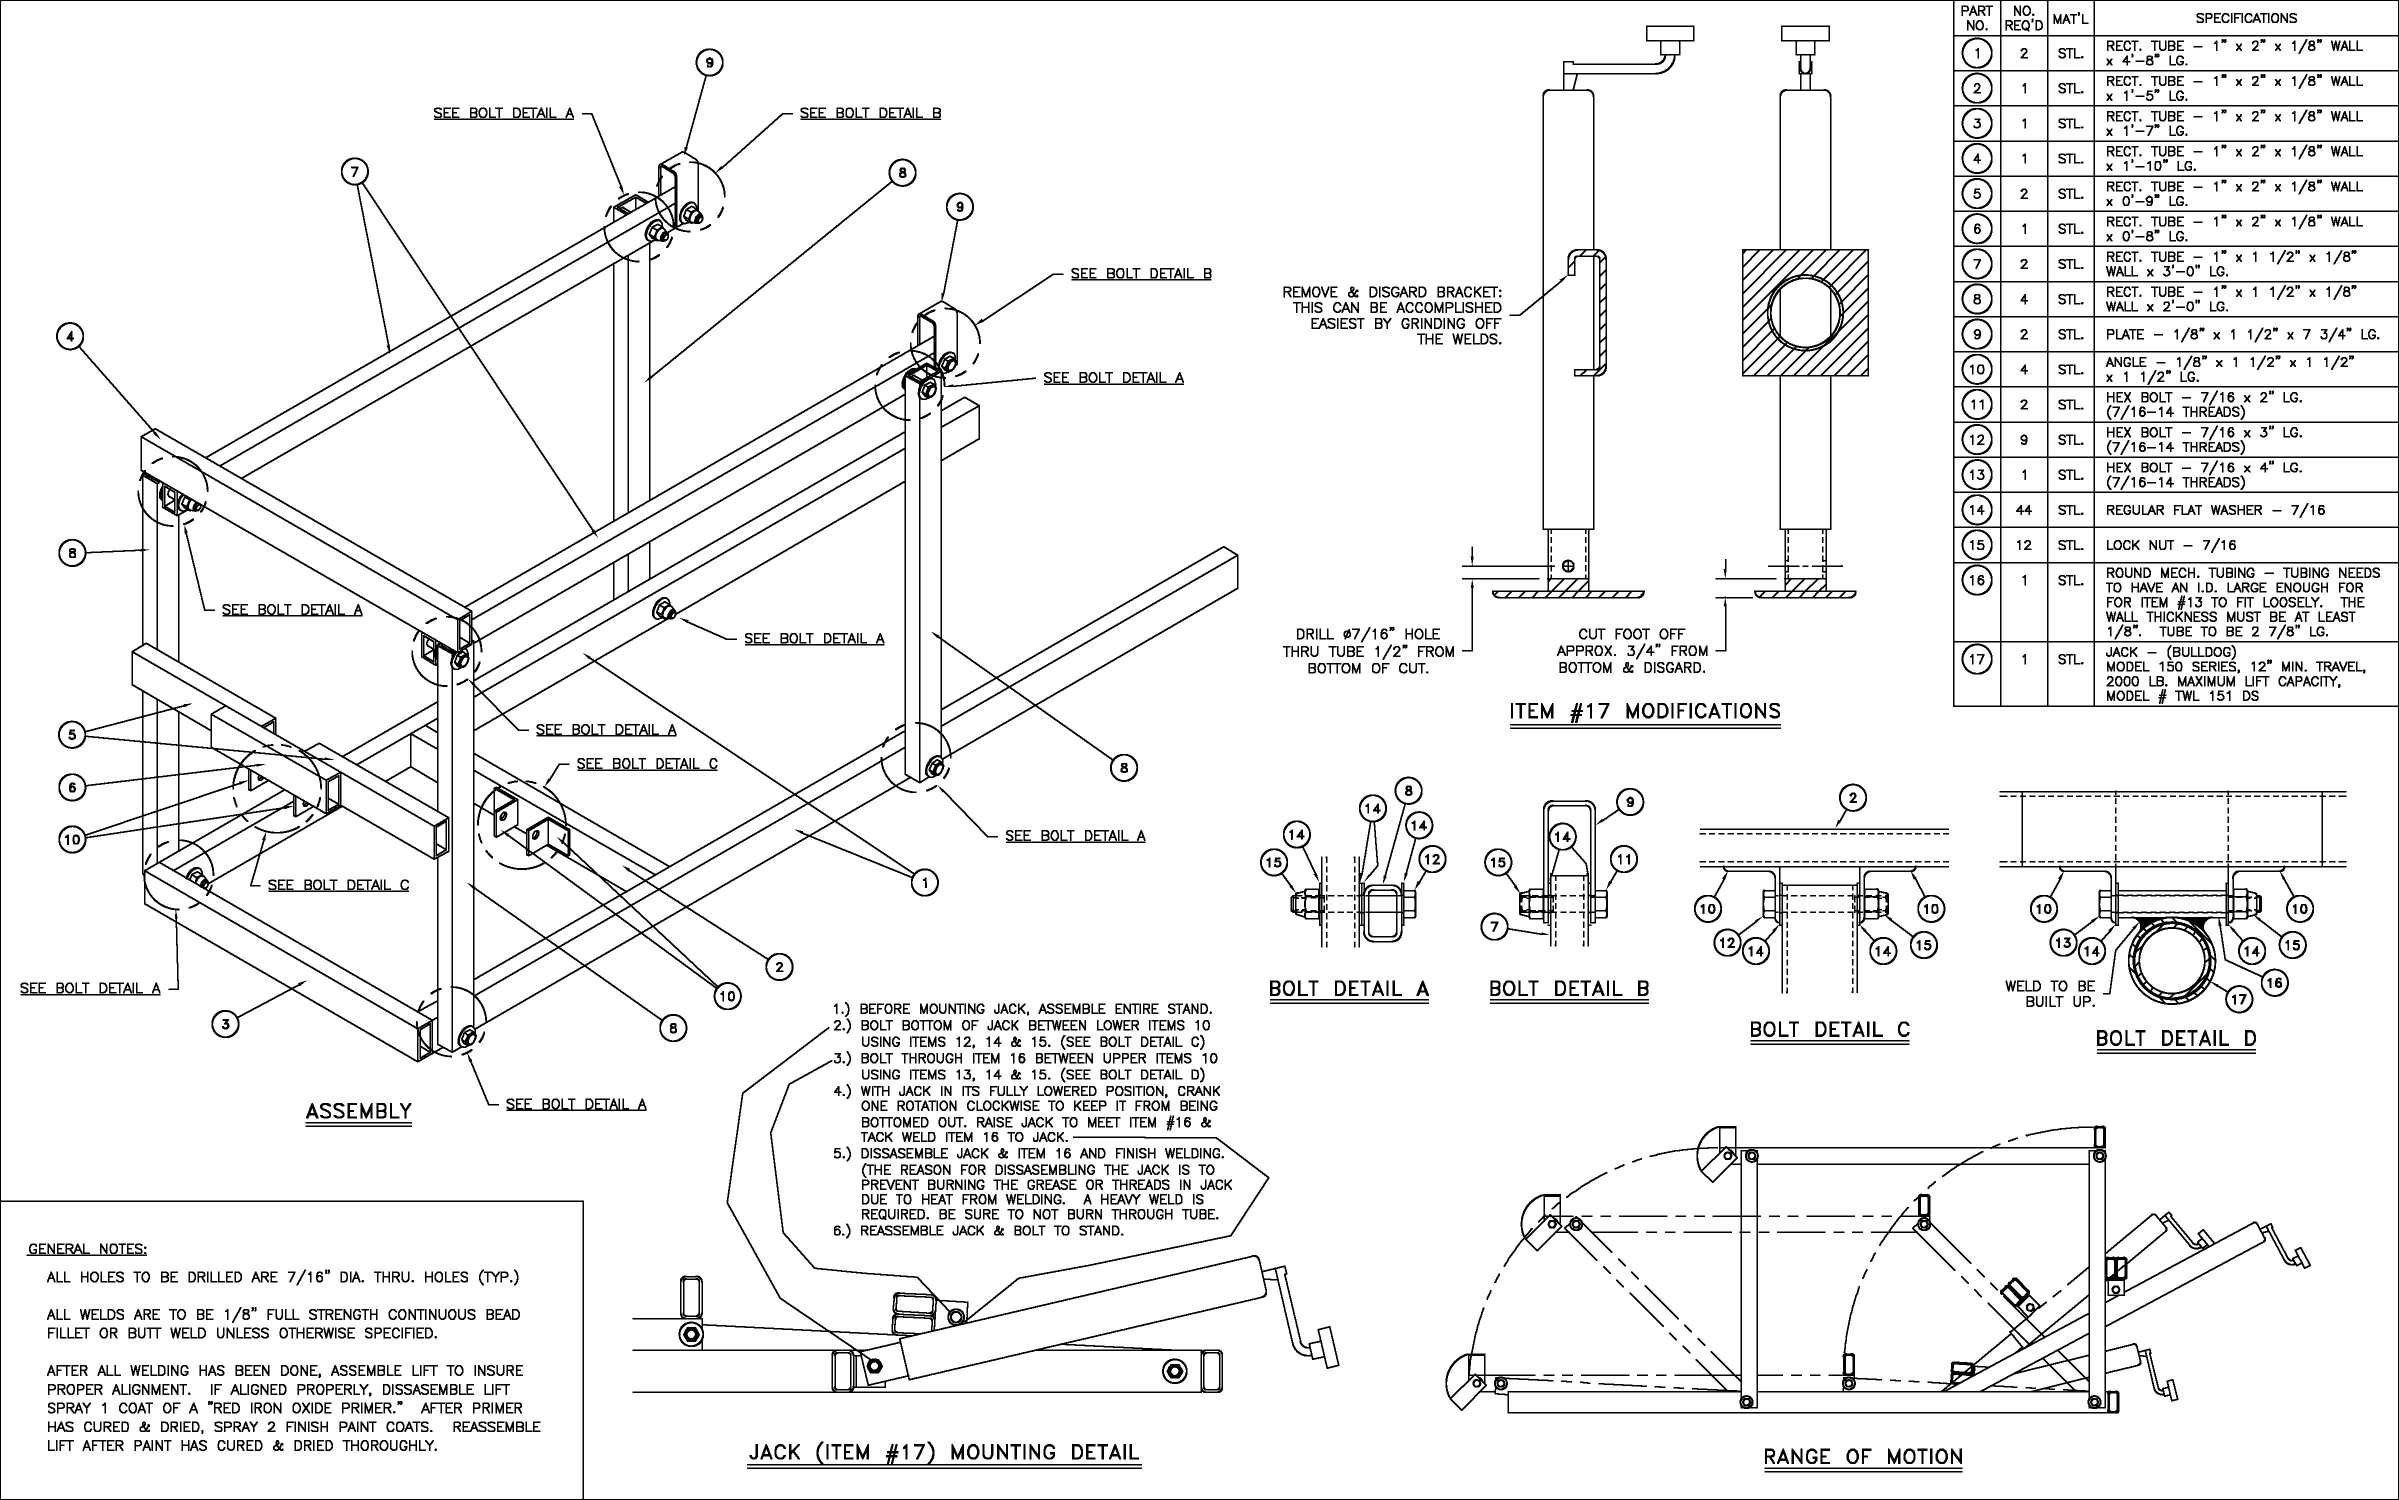 Dump Truck Diagram Pin by Homemadetools On Homemade Jacks and Lifts Of Dump Truck Diagram